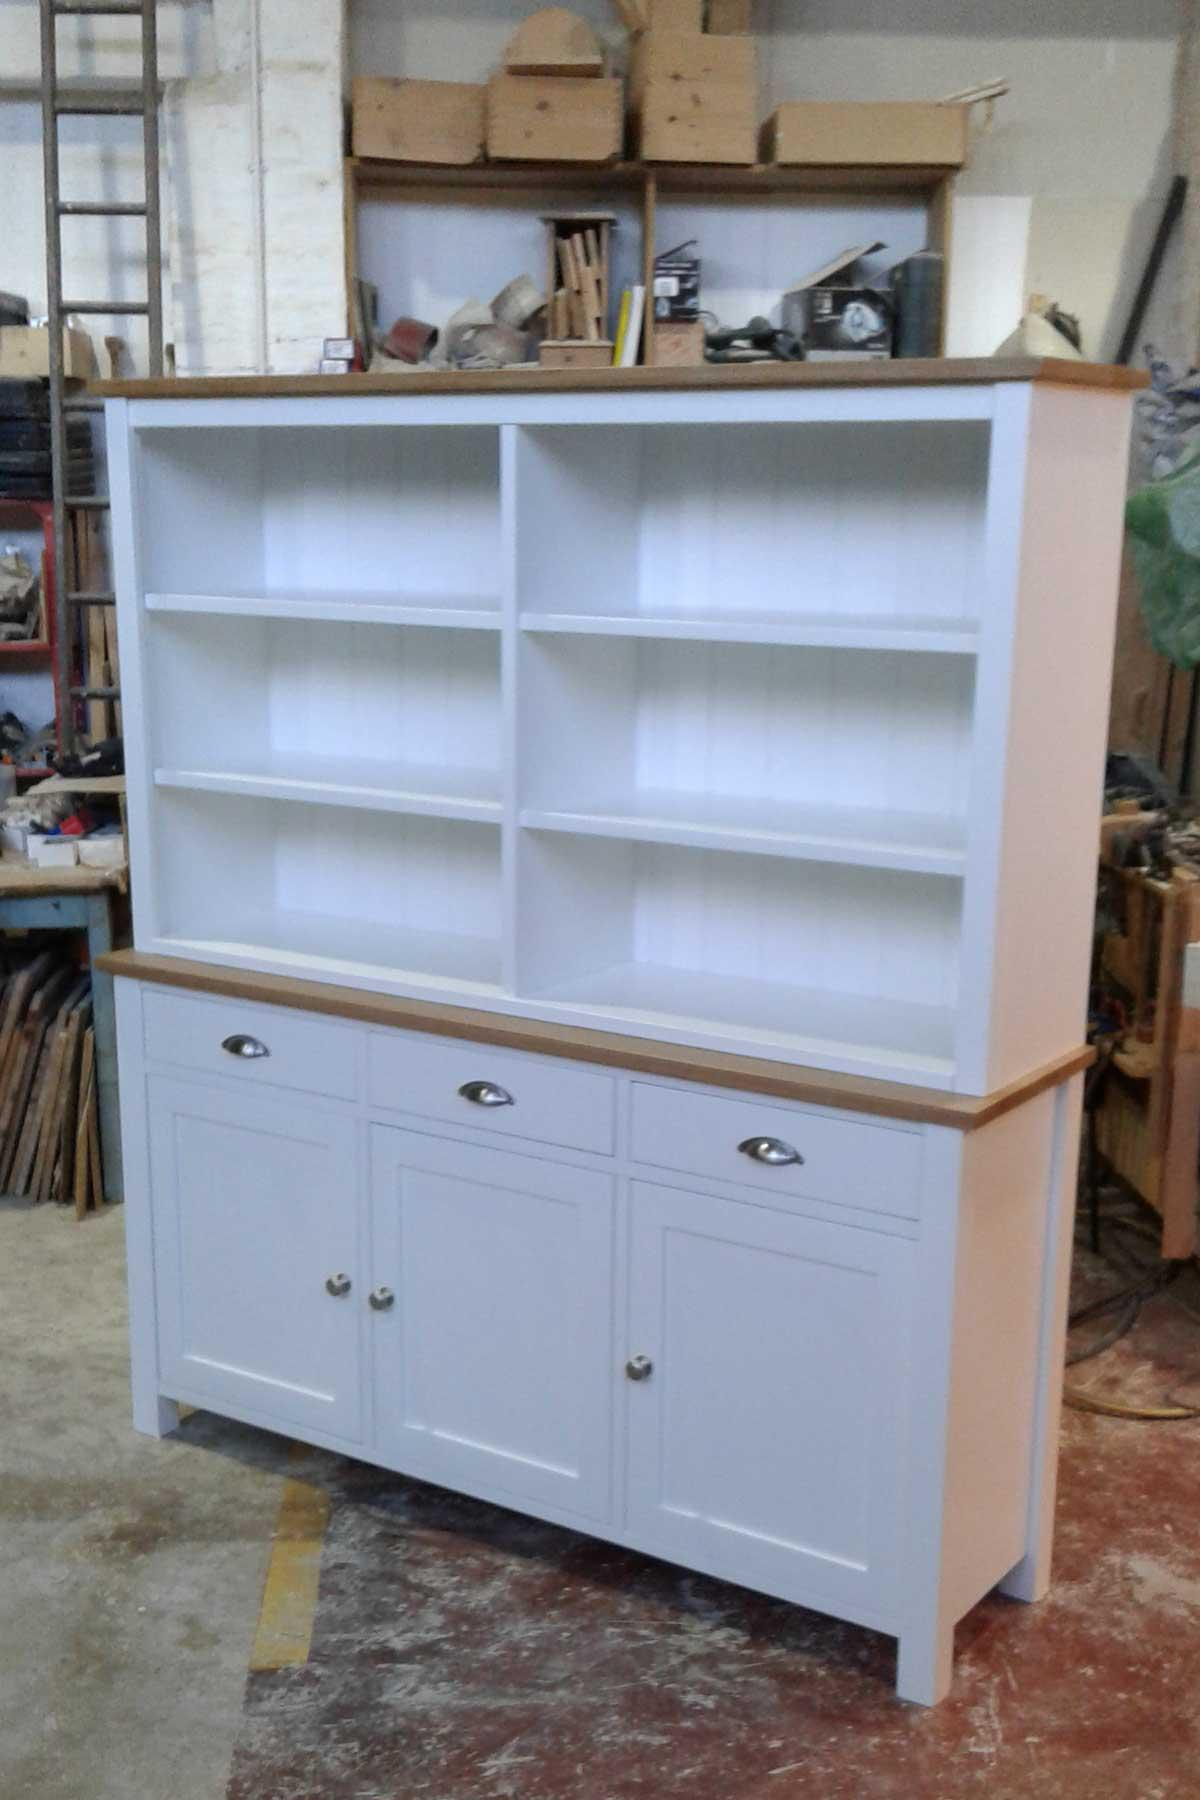 Made-to-measure Painted Kitchen Dressers